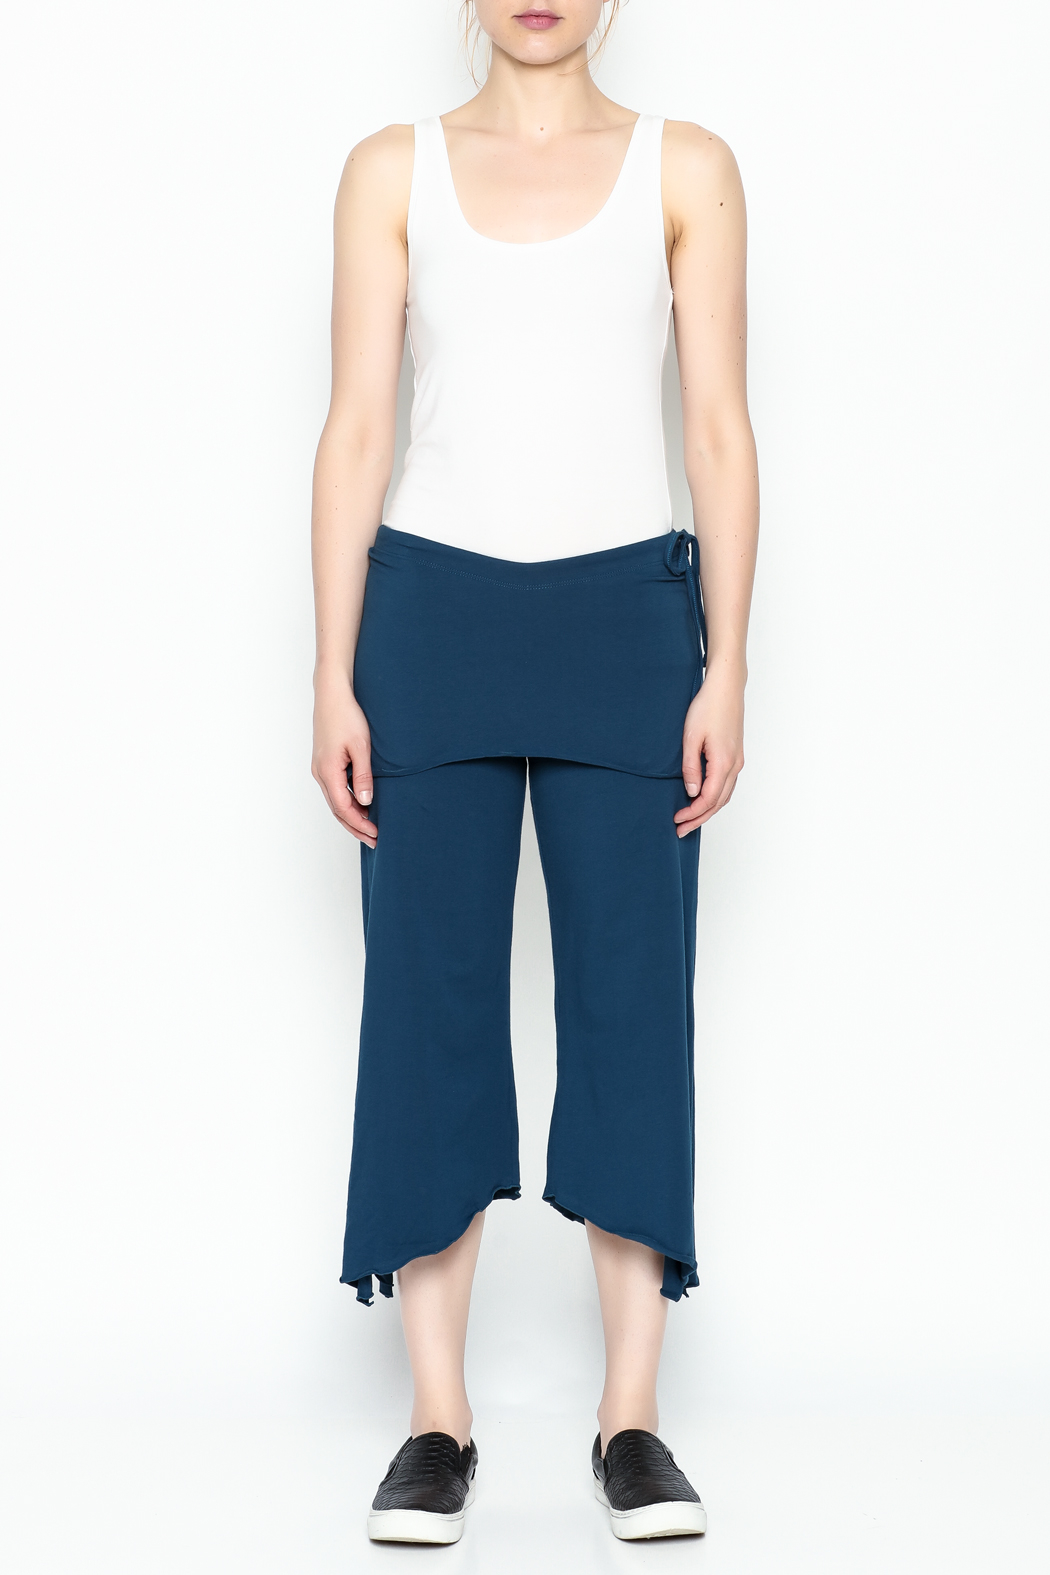 Made on Earth Skirted Crop Pant - Front Full Image